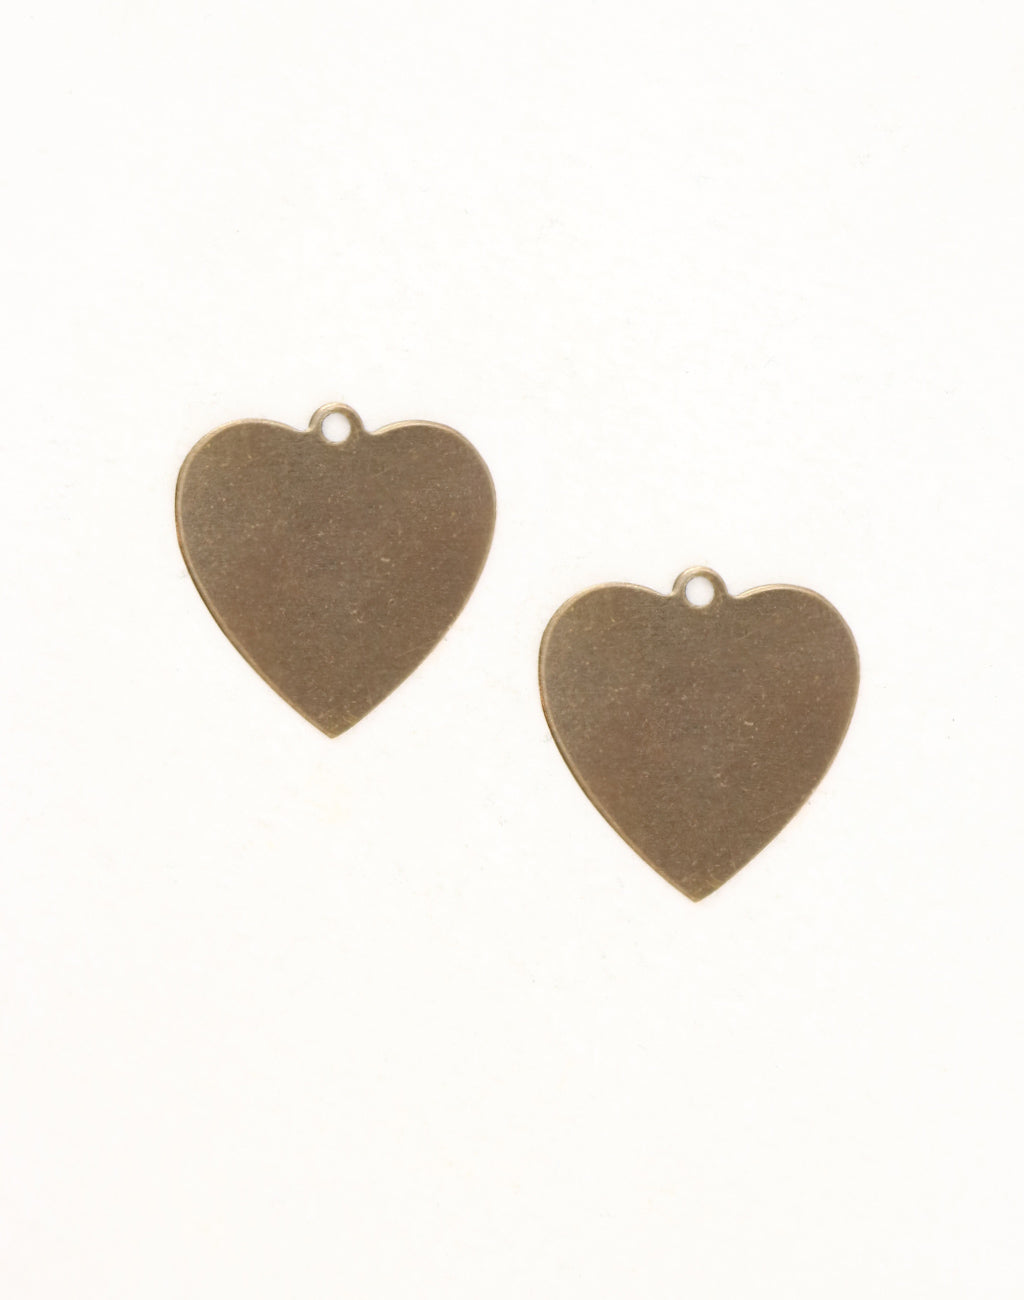 Heart, 20mm, (2pcs)